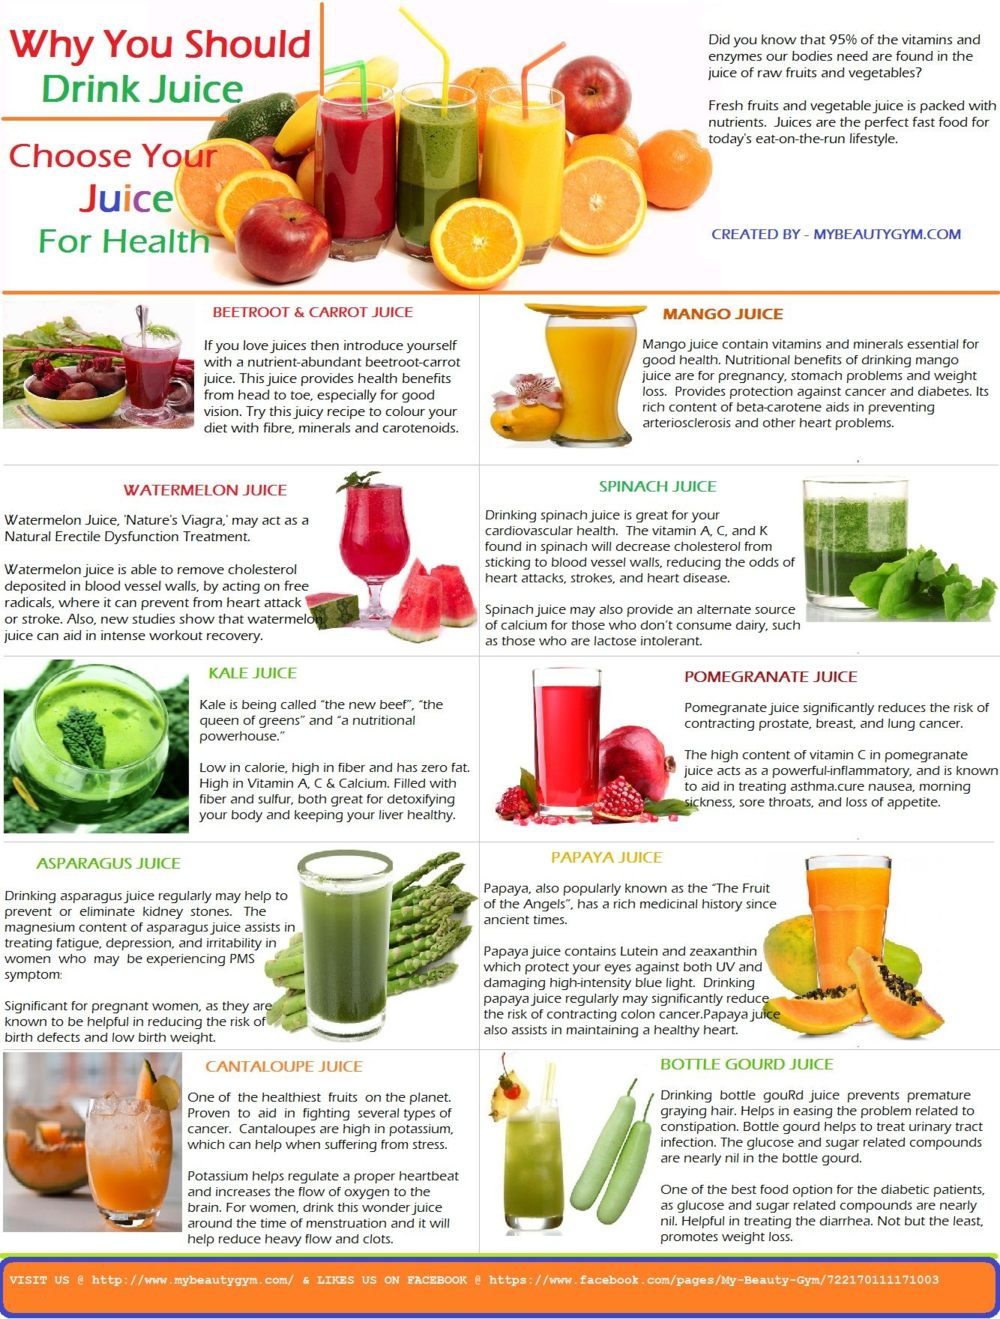 Juicing Your Spinach